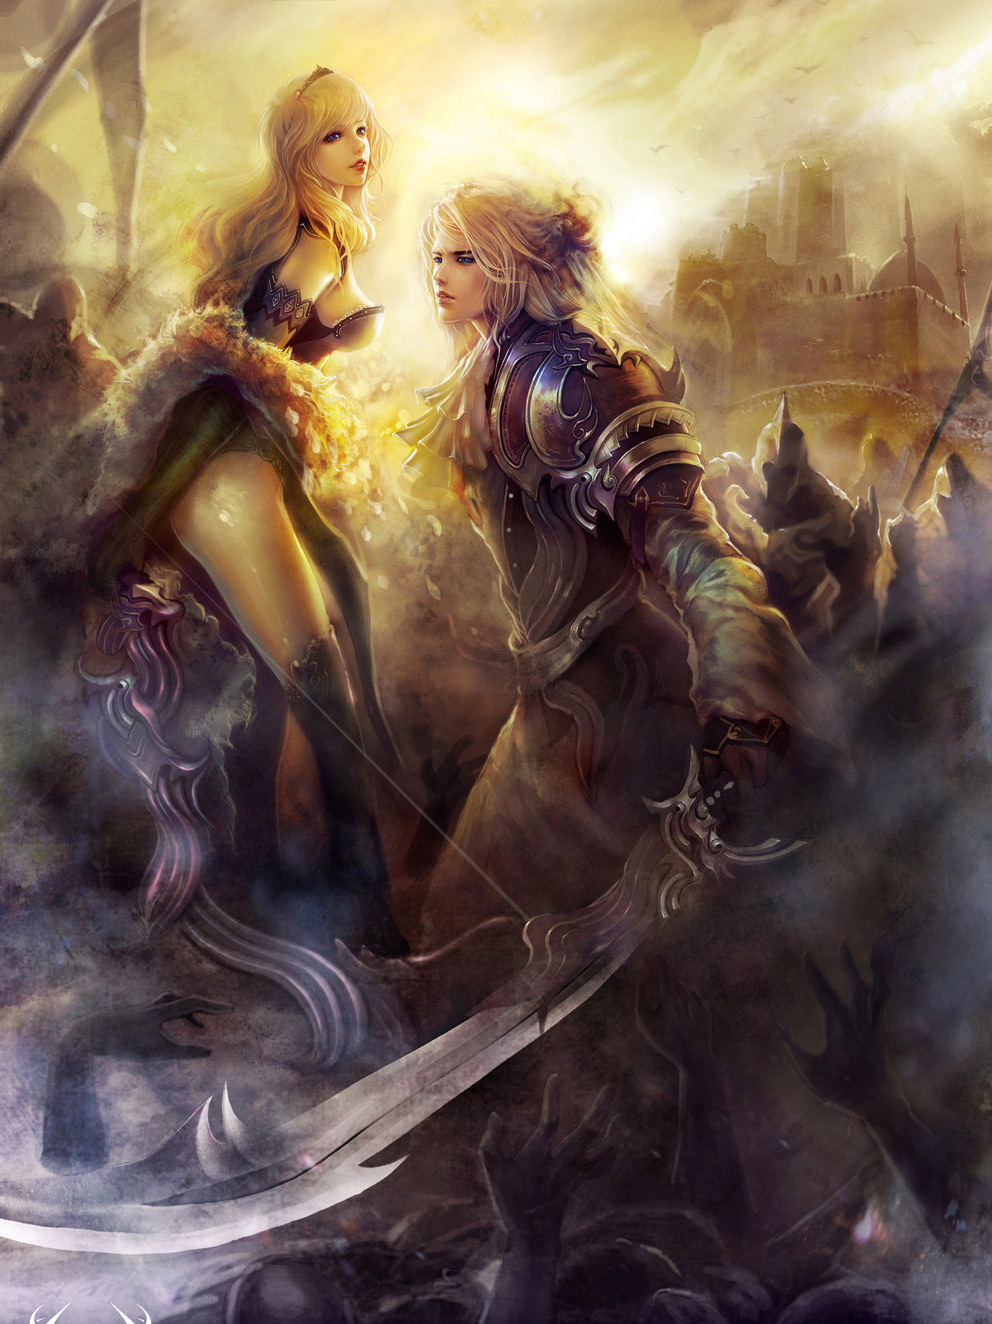 1000+ images about Fantasy on Pinterest